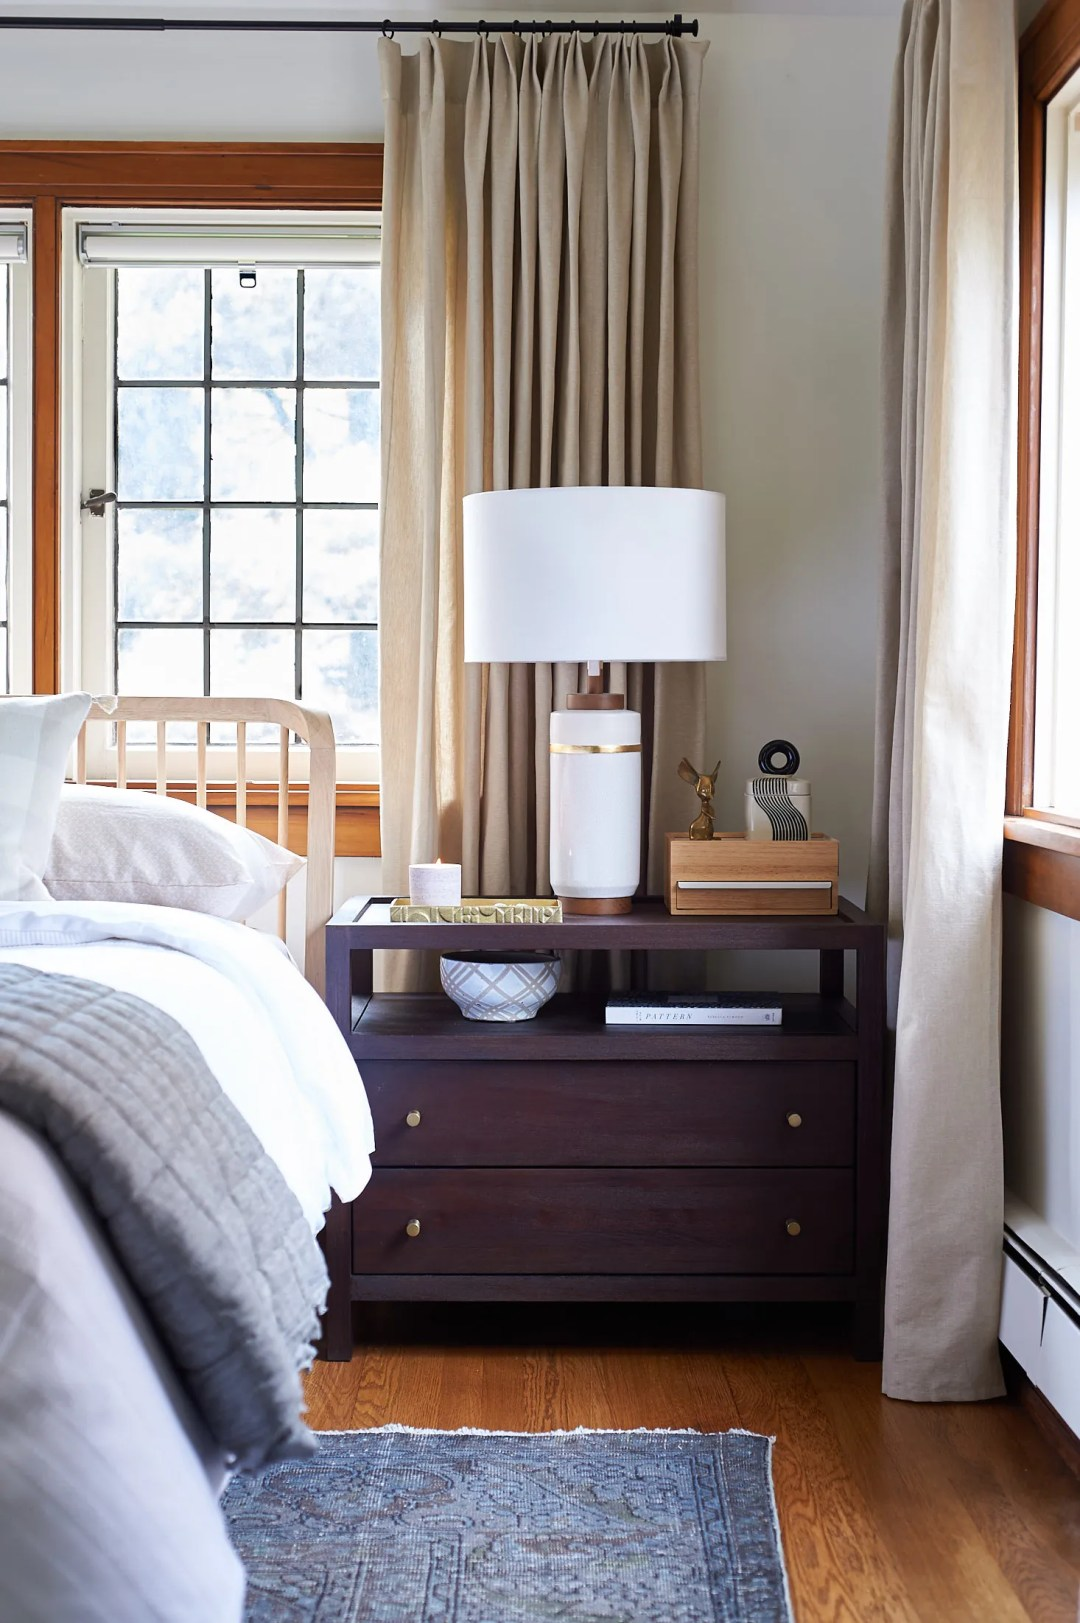 Crate and barrel keane nightstand